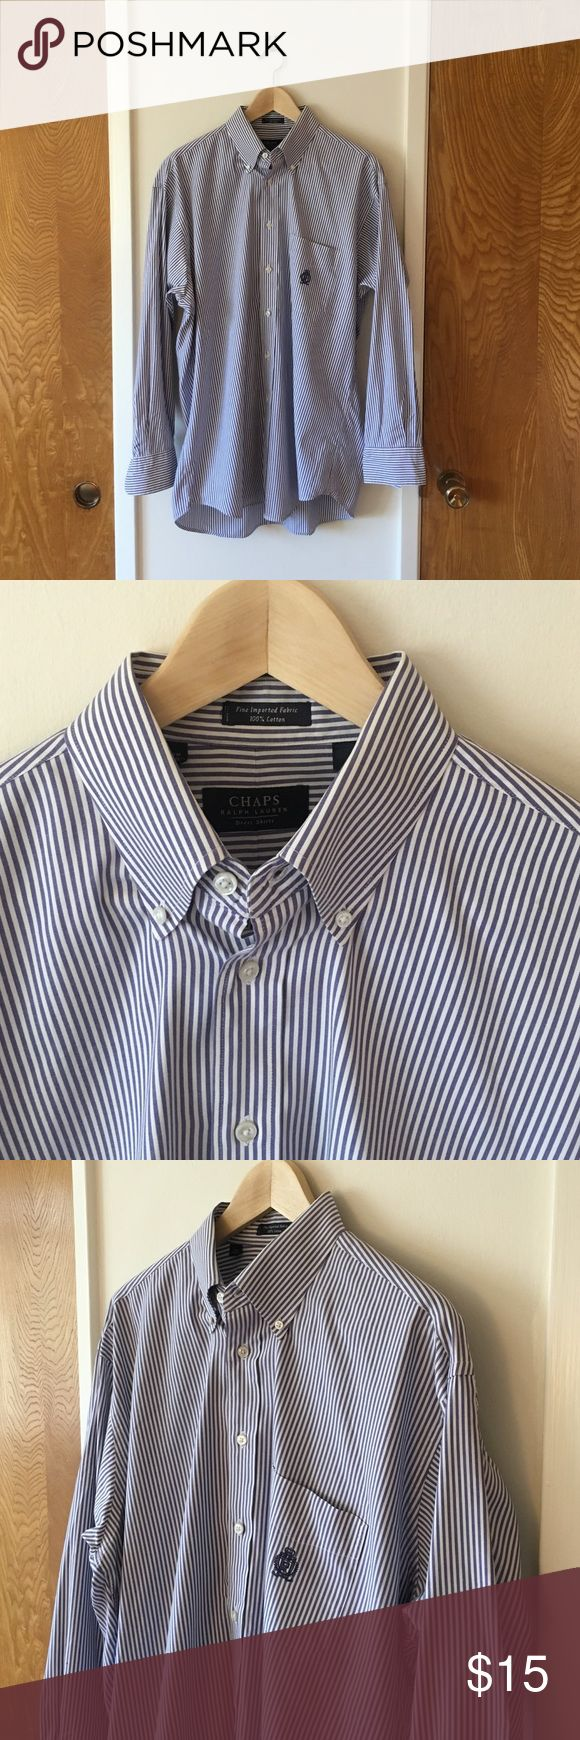 🎉 SALE: Chaps Ralph Lauren men's dress shirt 🎉 MOVING SALE - Everything must go: Chaps Ralph Lauren men's dress shirt. Blue stripes on white with classic embroidered logo on pocket. Gently worn and in great condition. Size 16-32/33. Ralph Lauren Shirts Dress Shirts